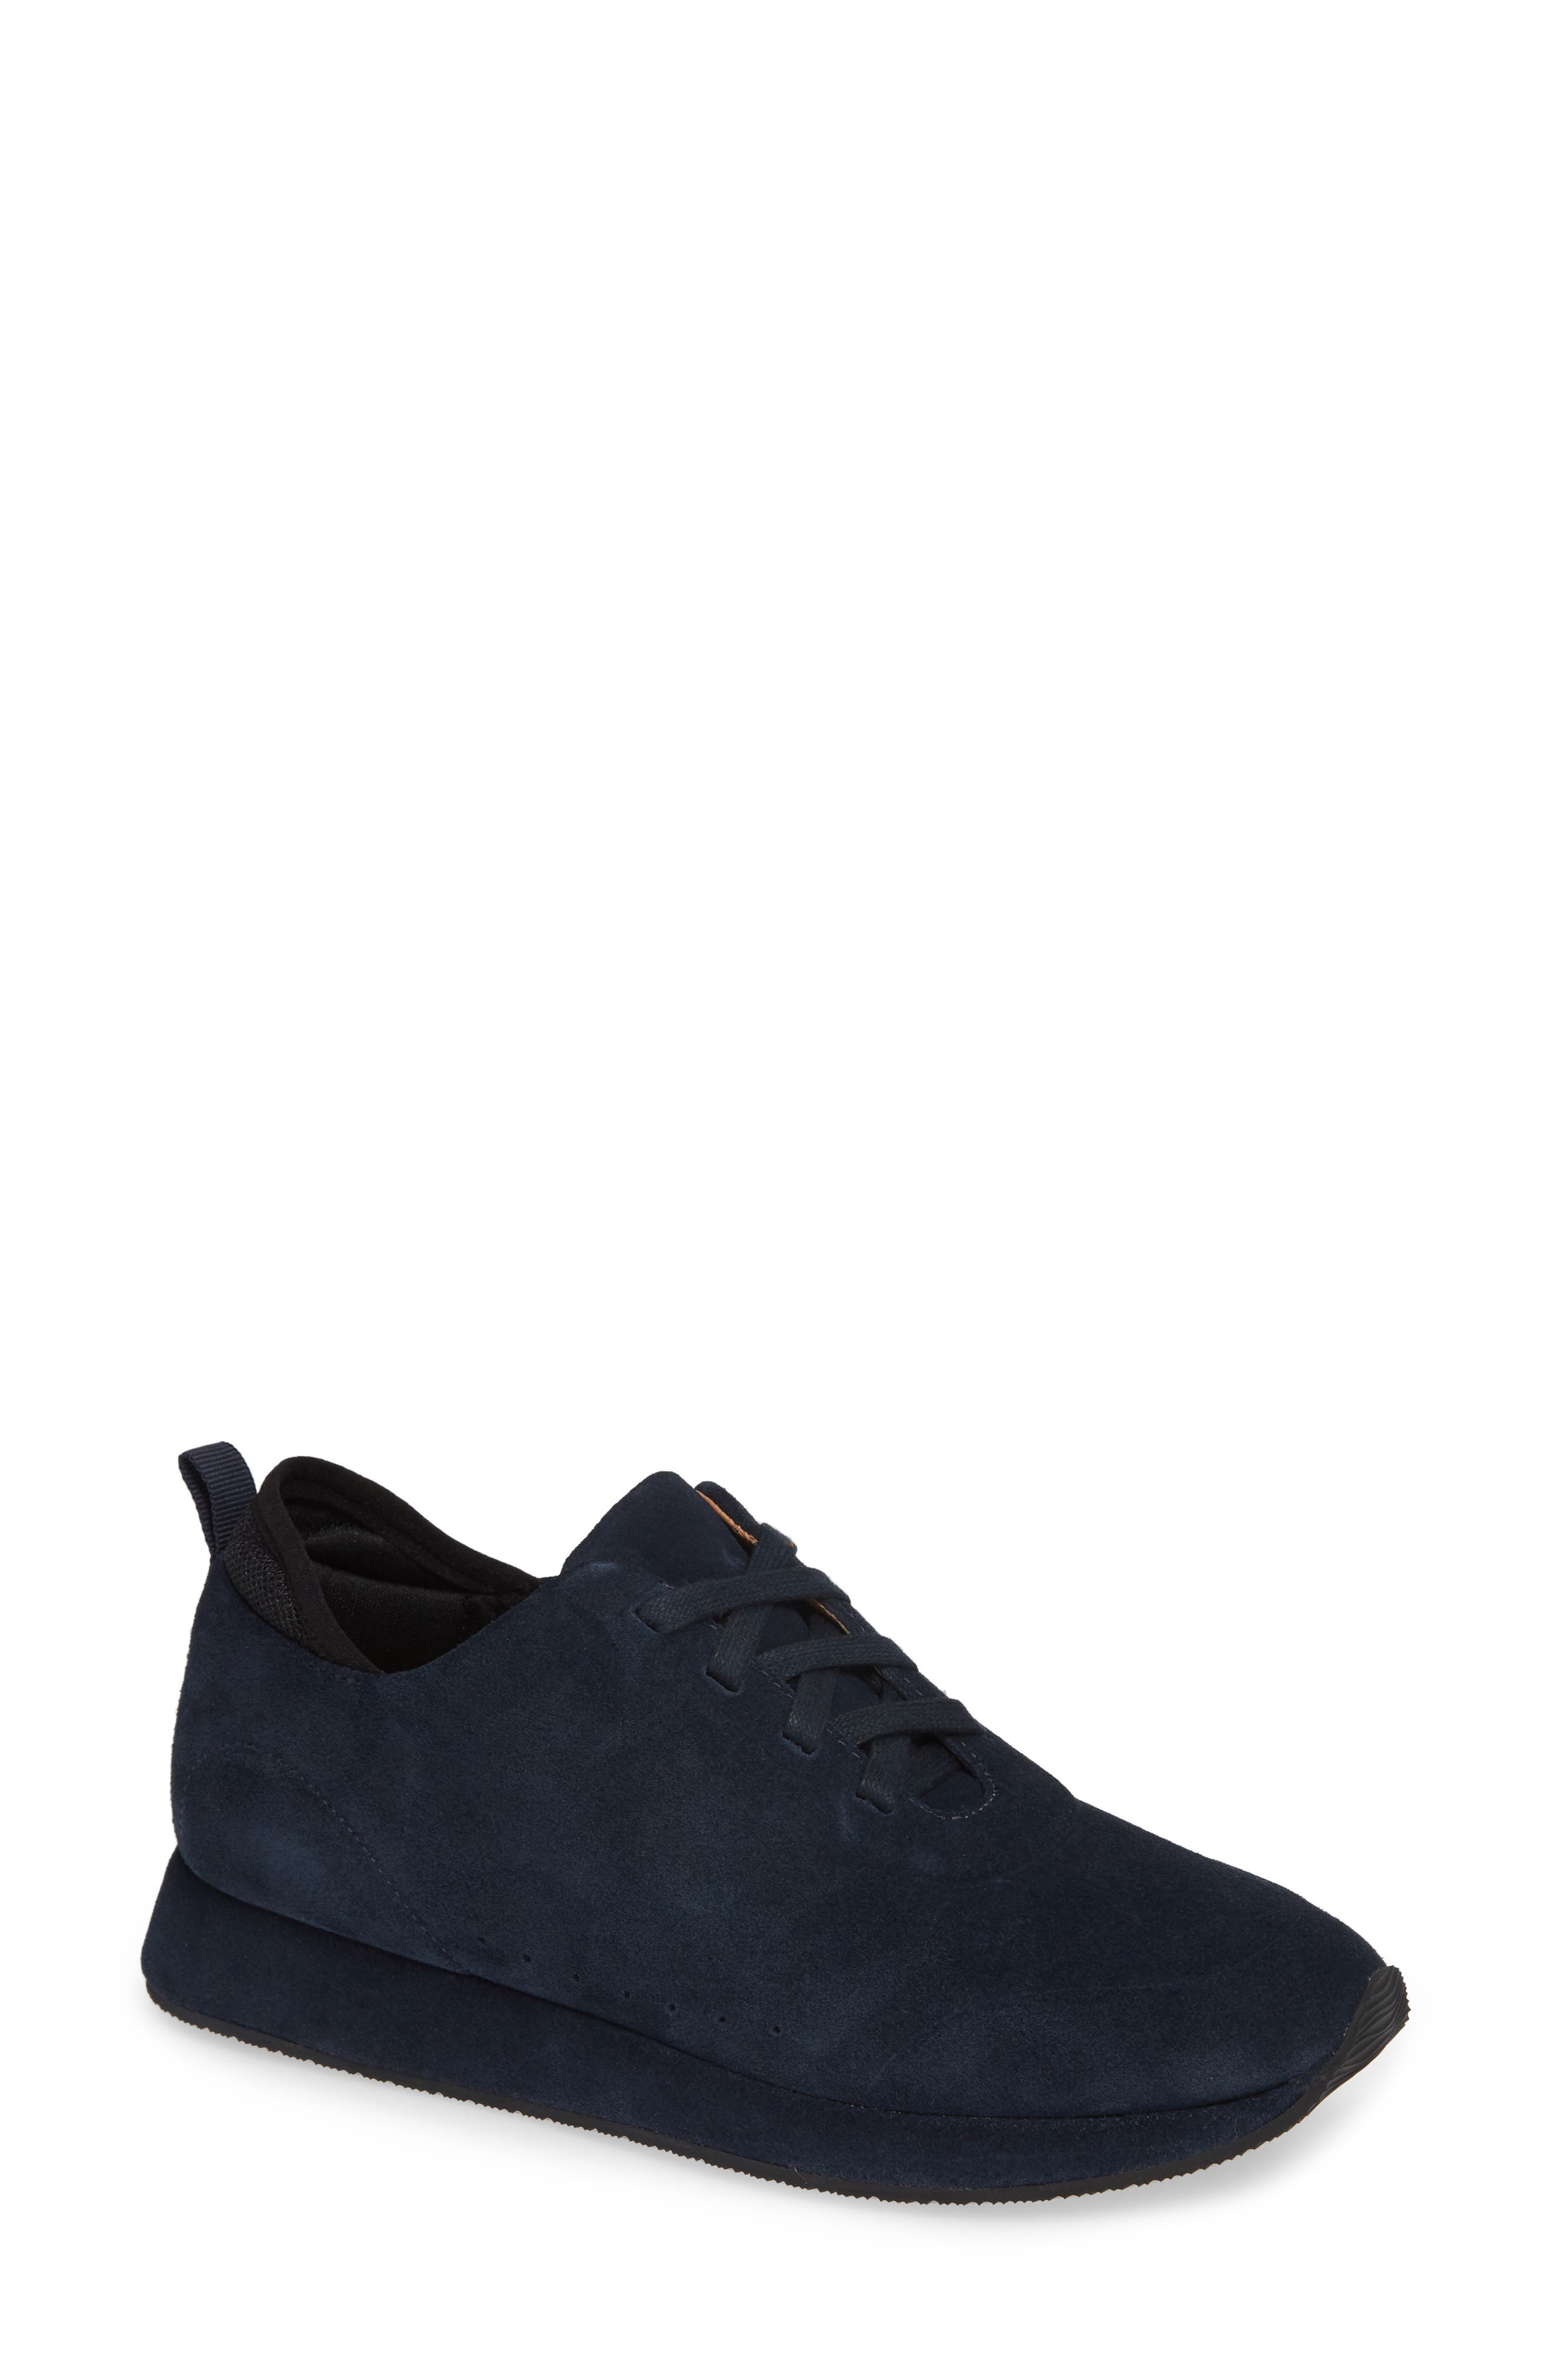 SUDINI Mabel Sneaker, Main, color, NAVY SUEDE